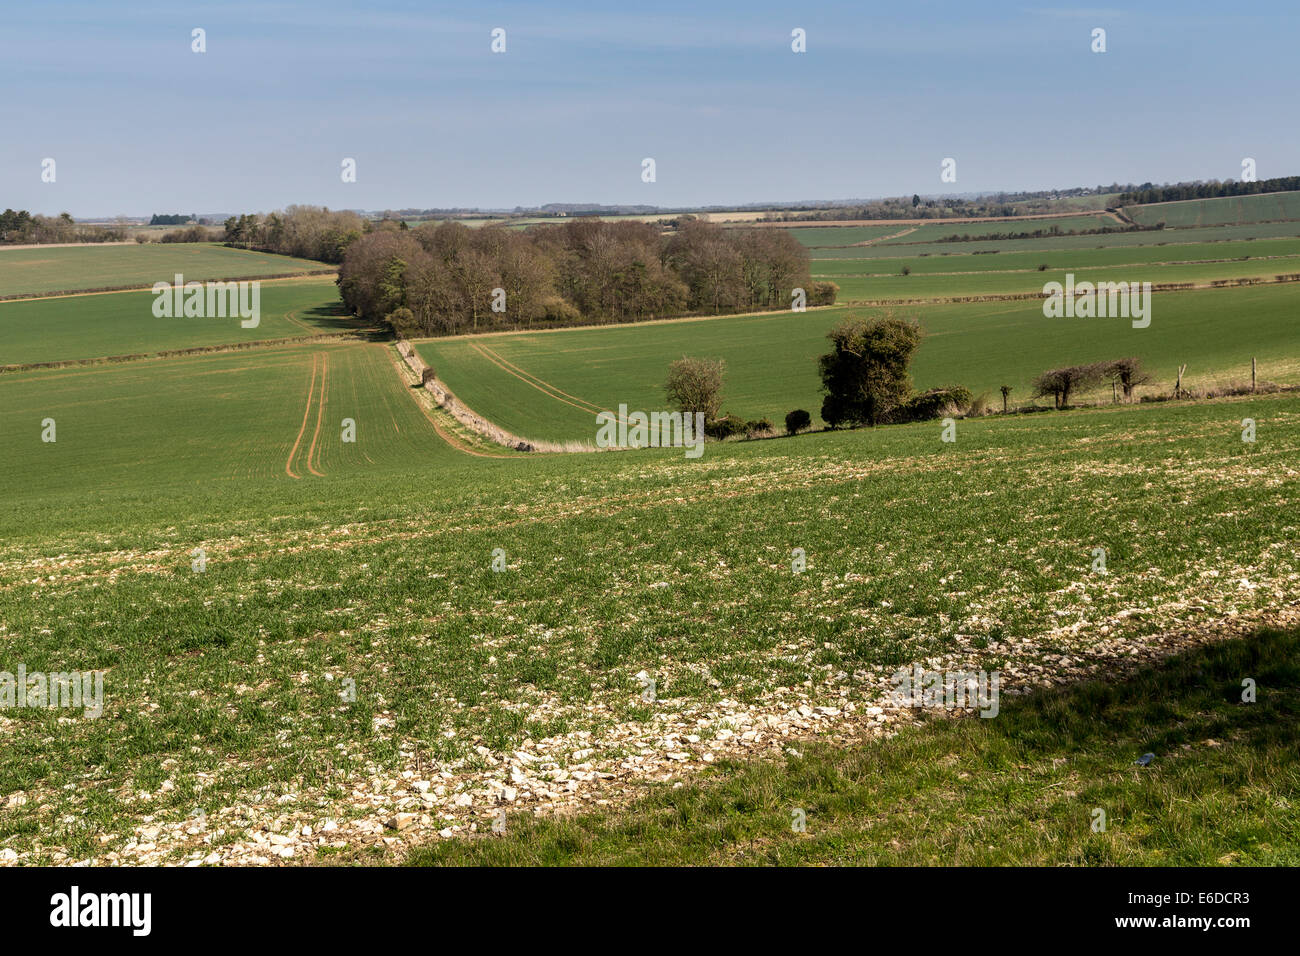 Stony soil in fields, Cotswolds, England, UK - Stock Image